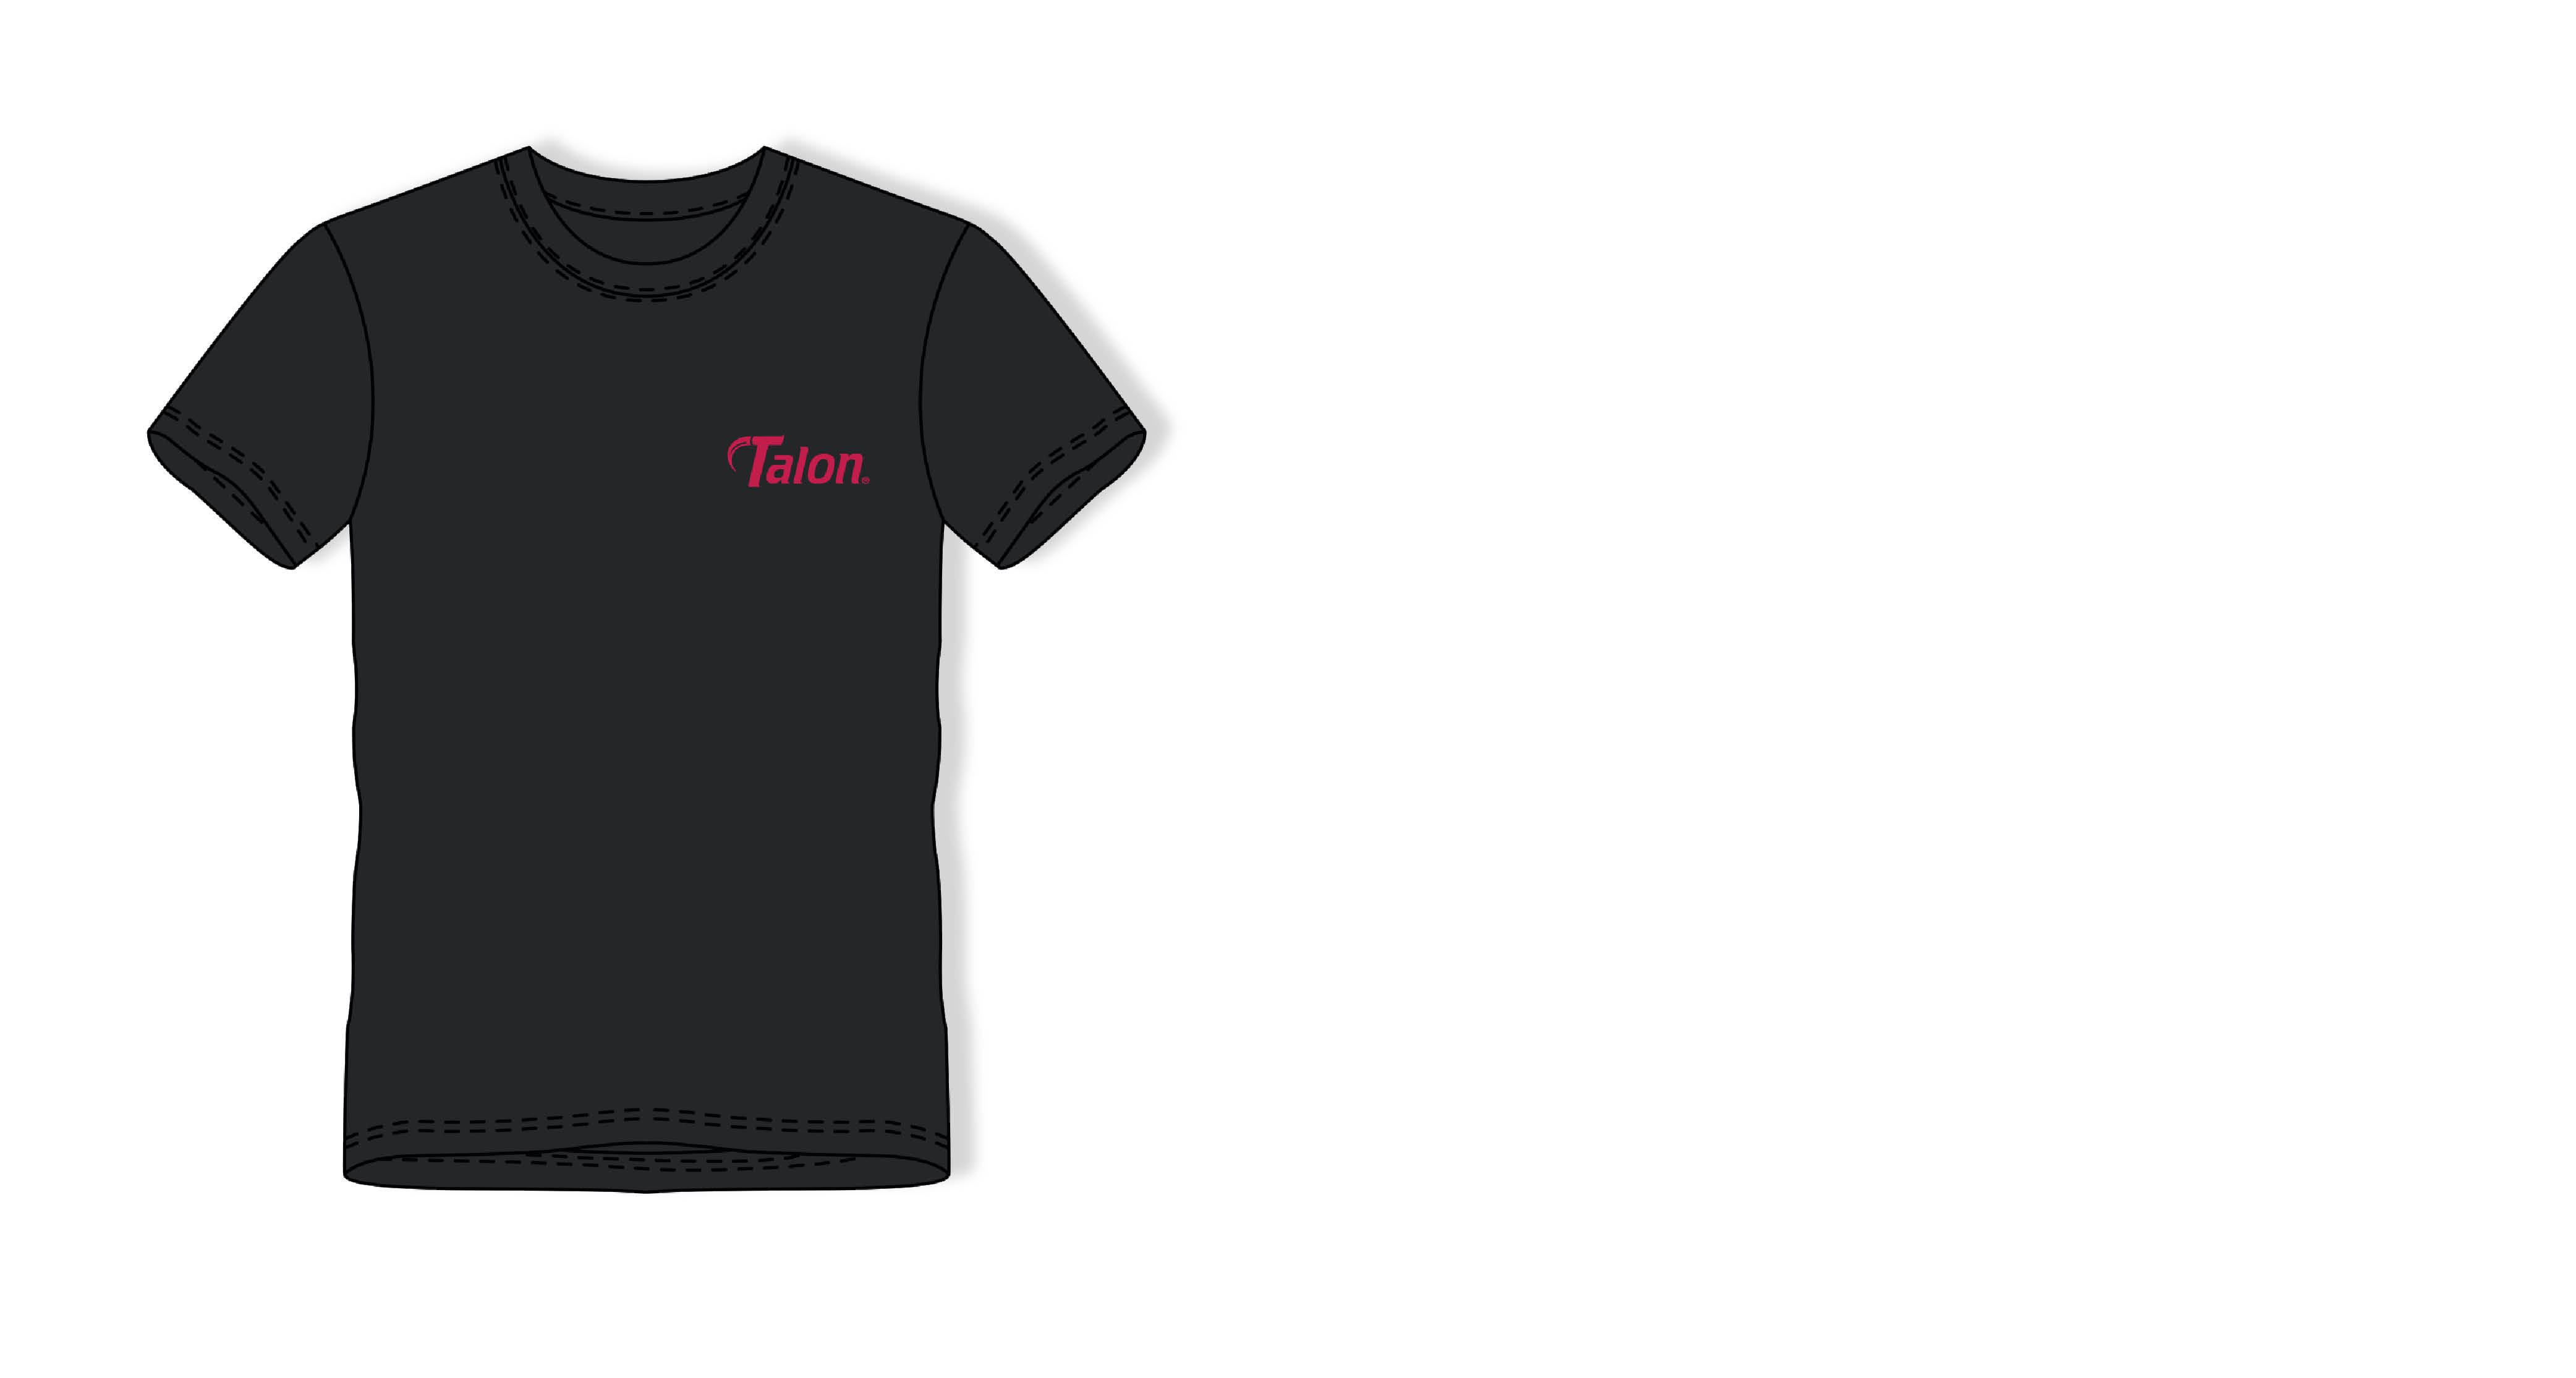 talon-t-shirt-1-homepage1-